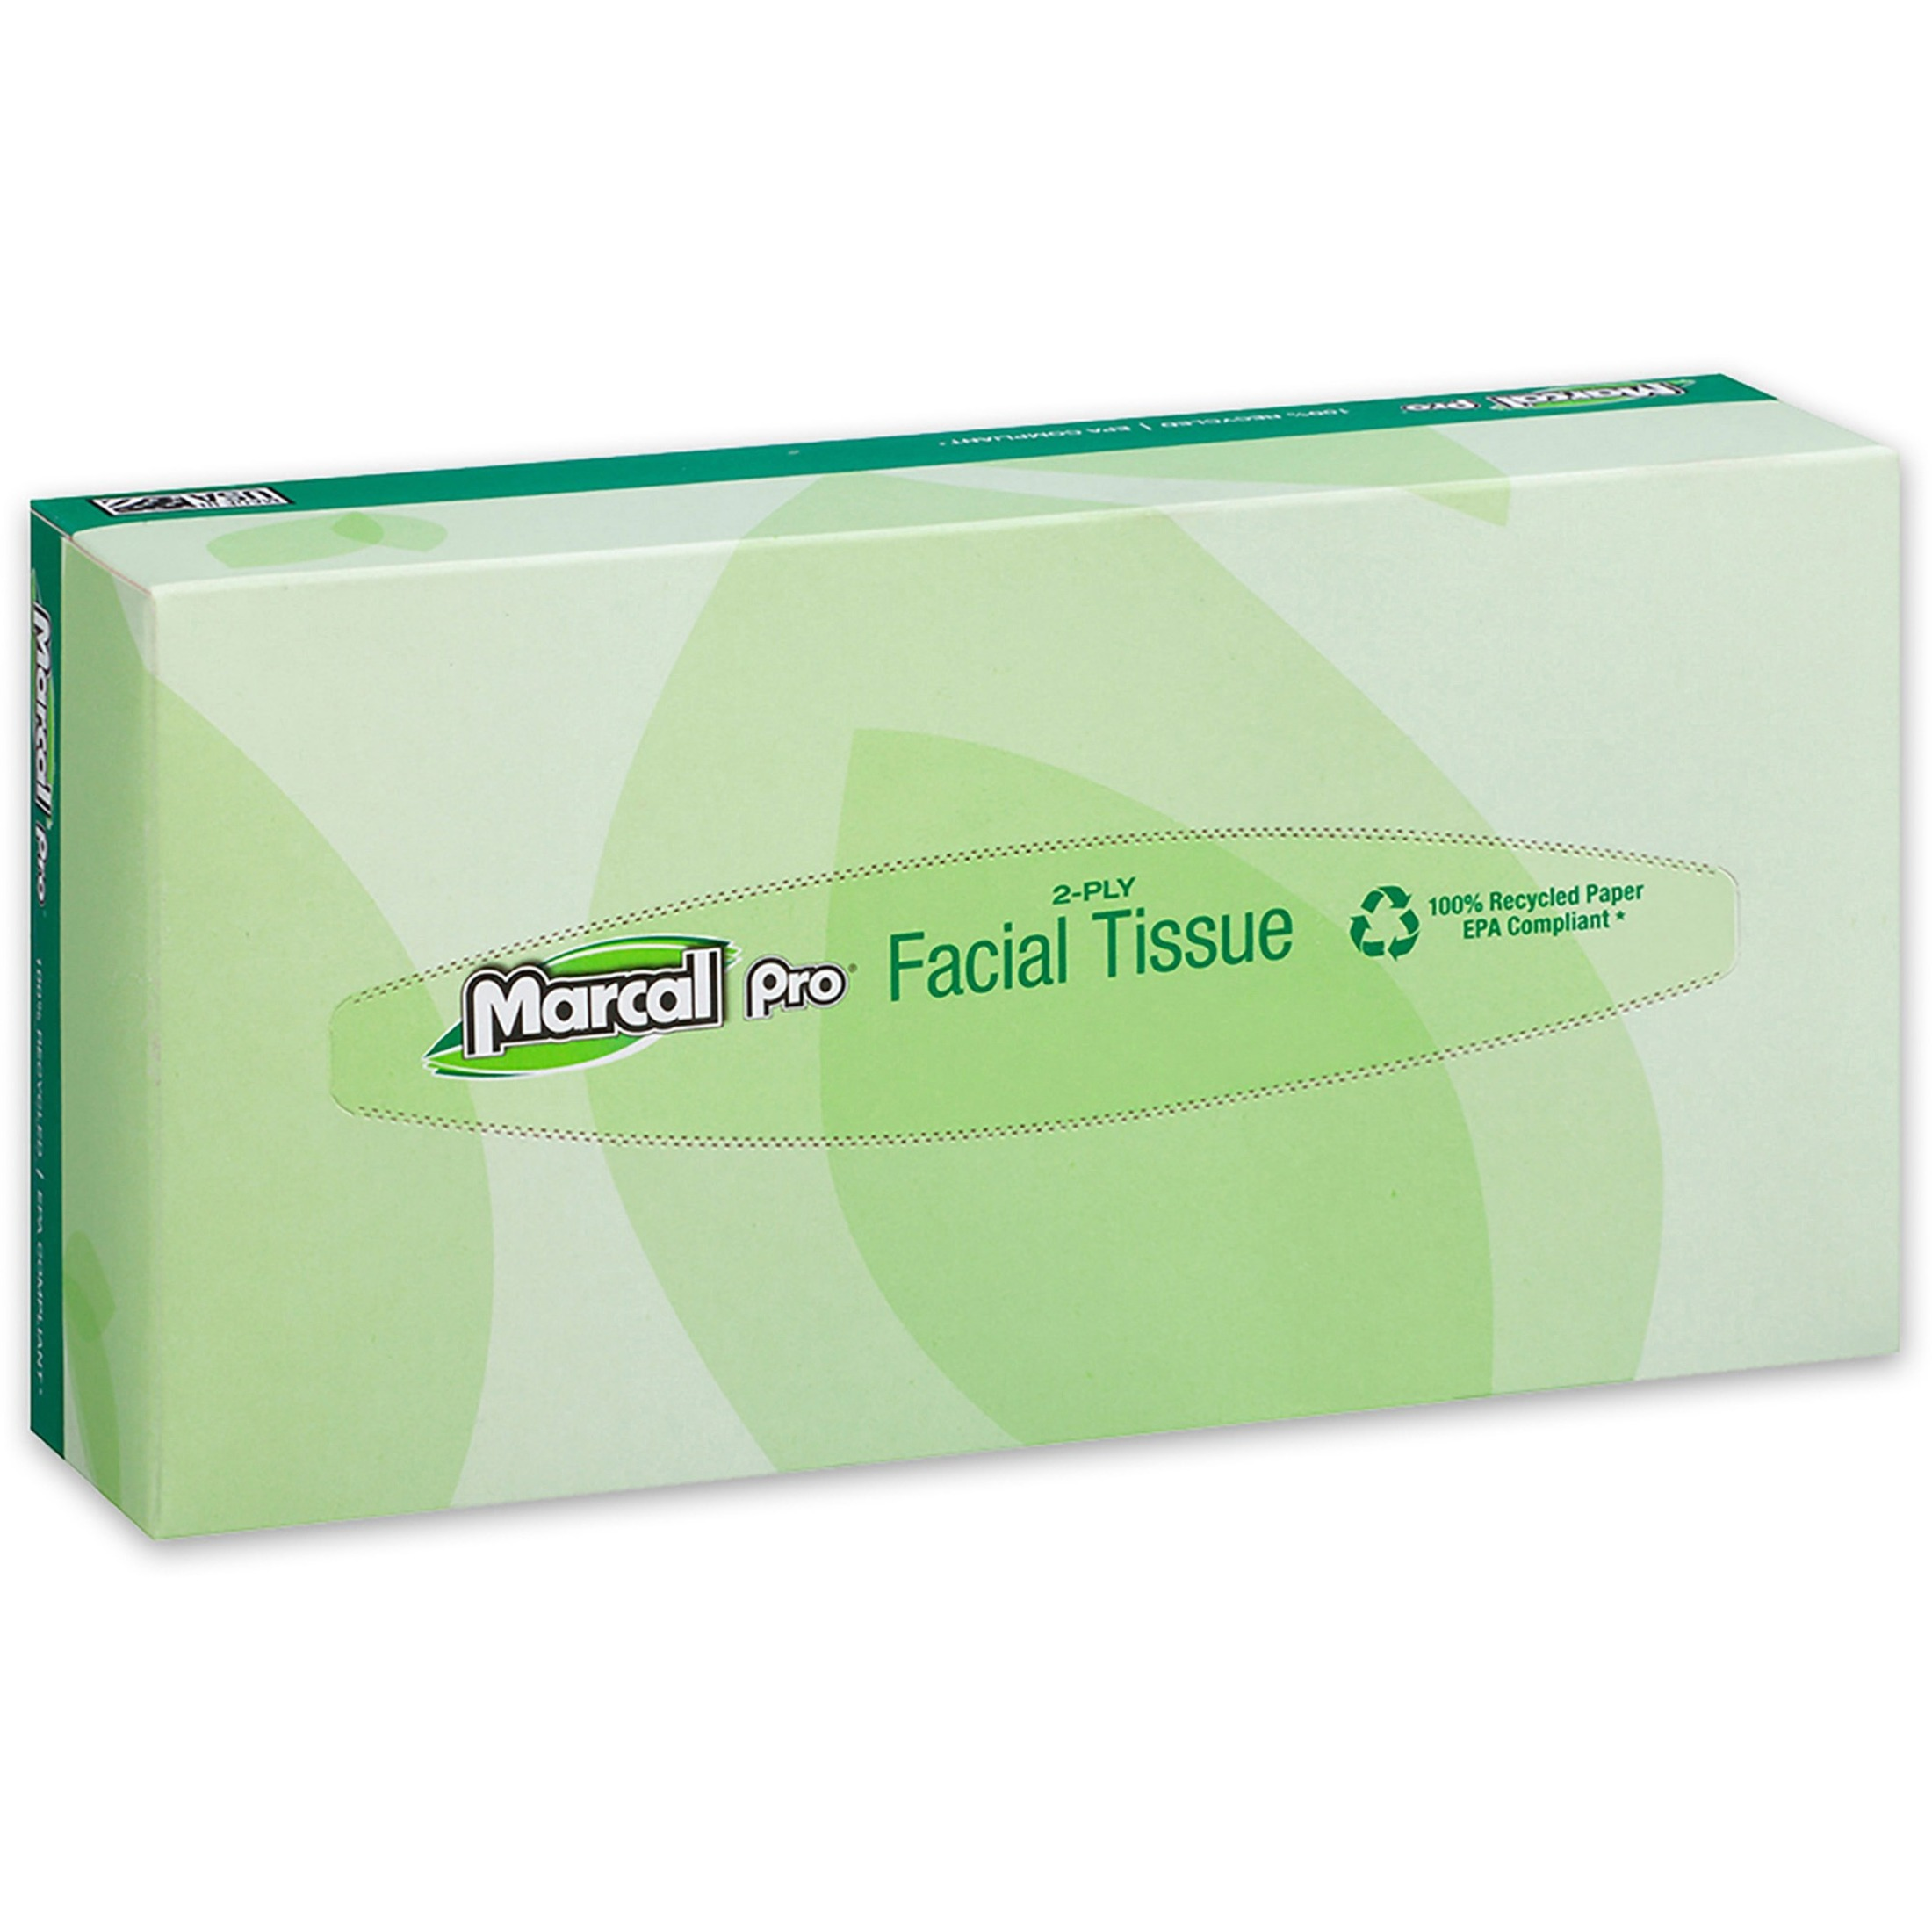 100% Recycled Convenience Pack Facial Tissue, White, 100/Box, 30 Boxes/Carton